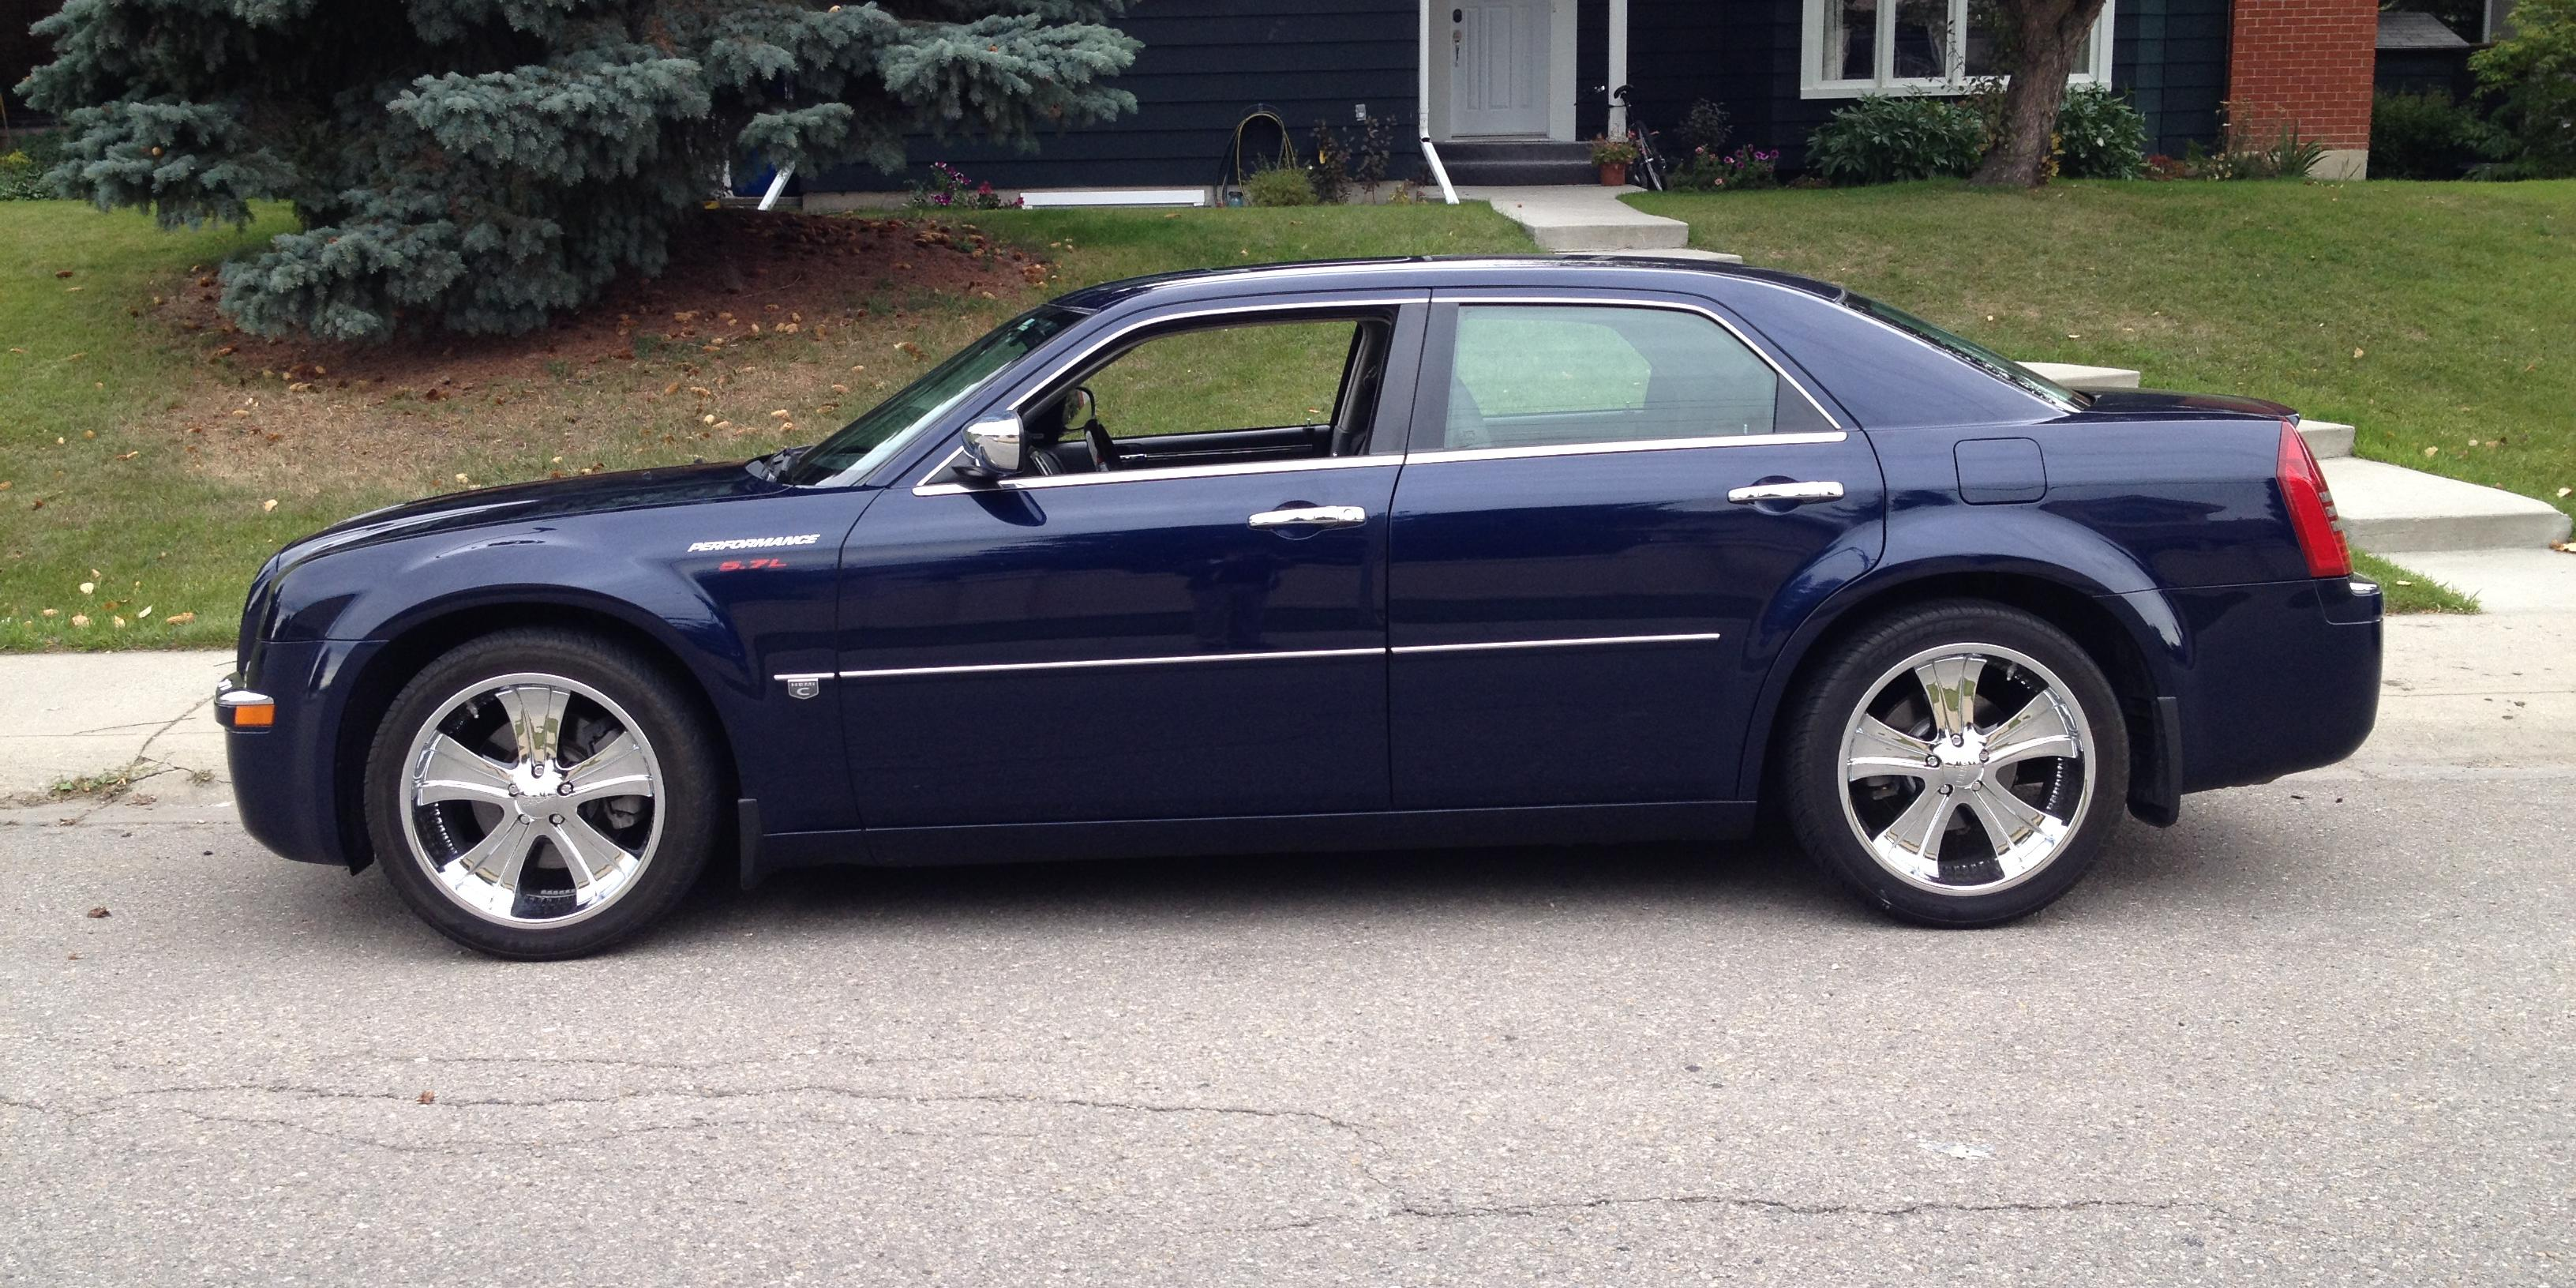 Adam Betz 2006 Chrysler 300